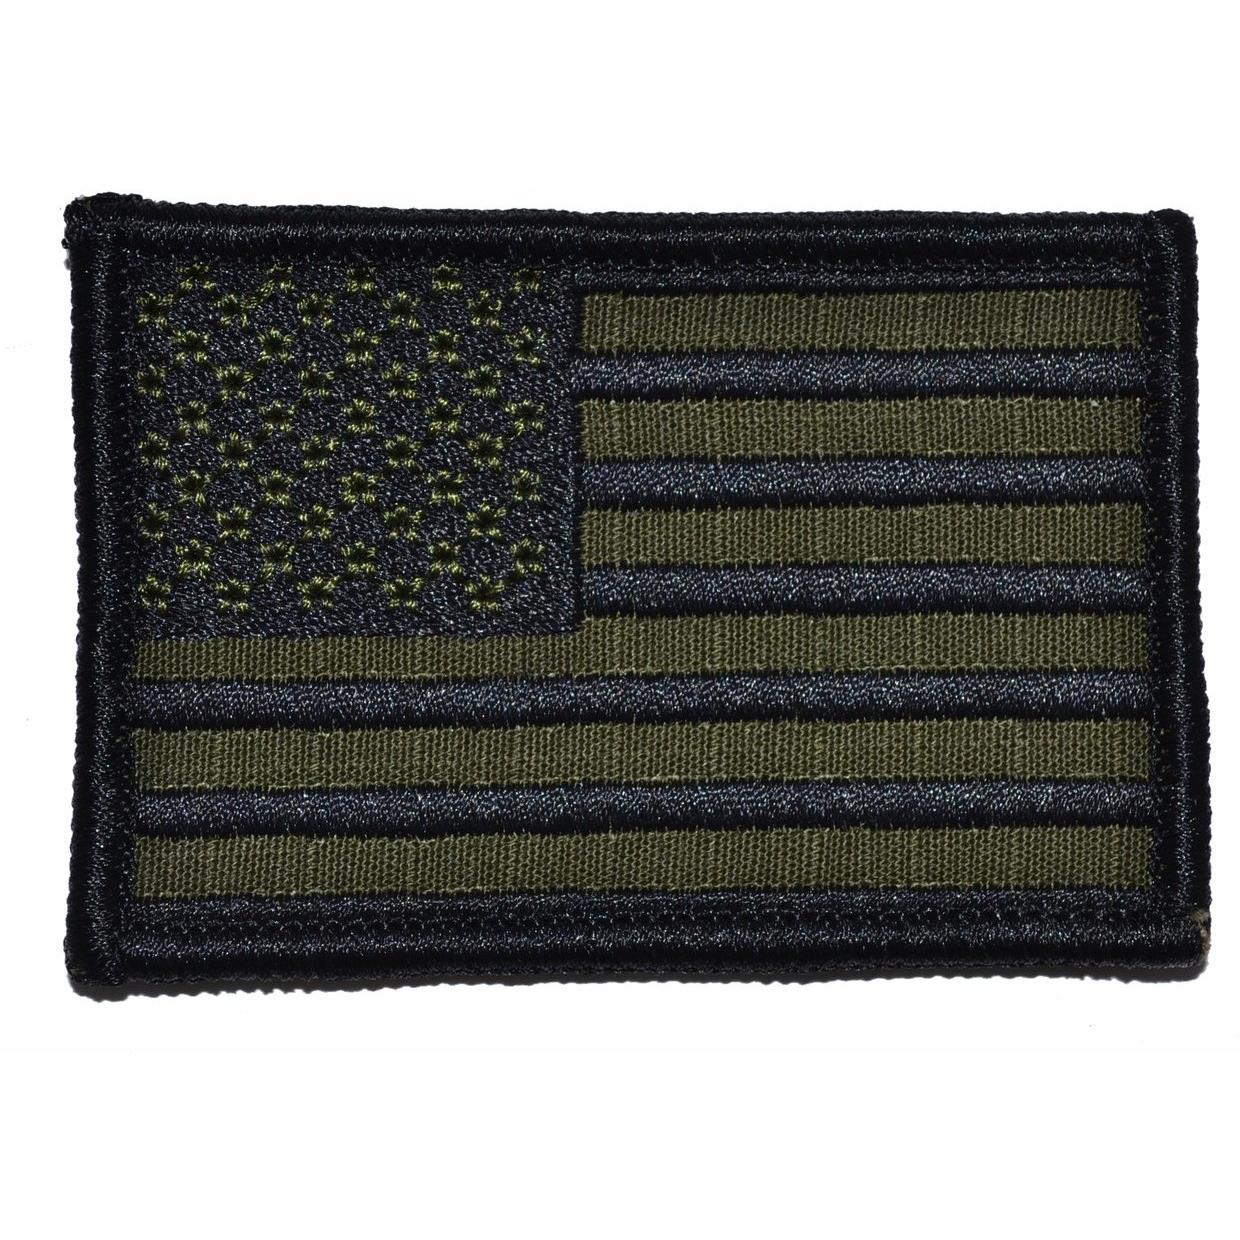 Olive Drab USA Flag - 2x3 Patch